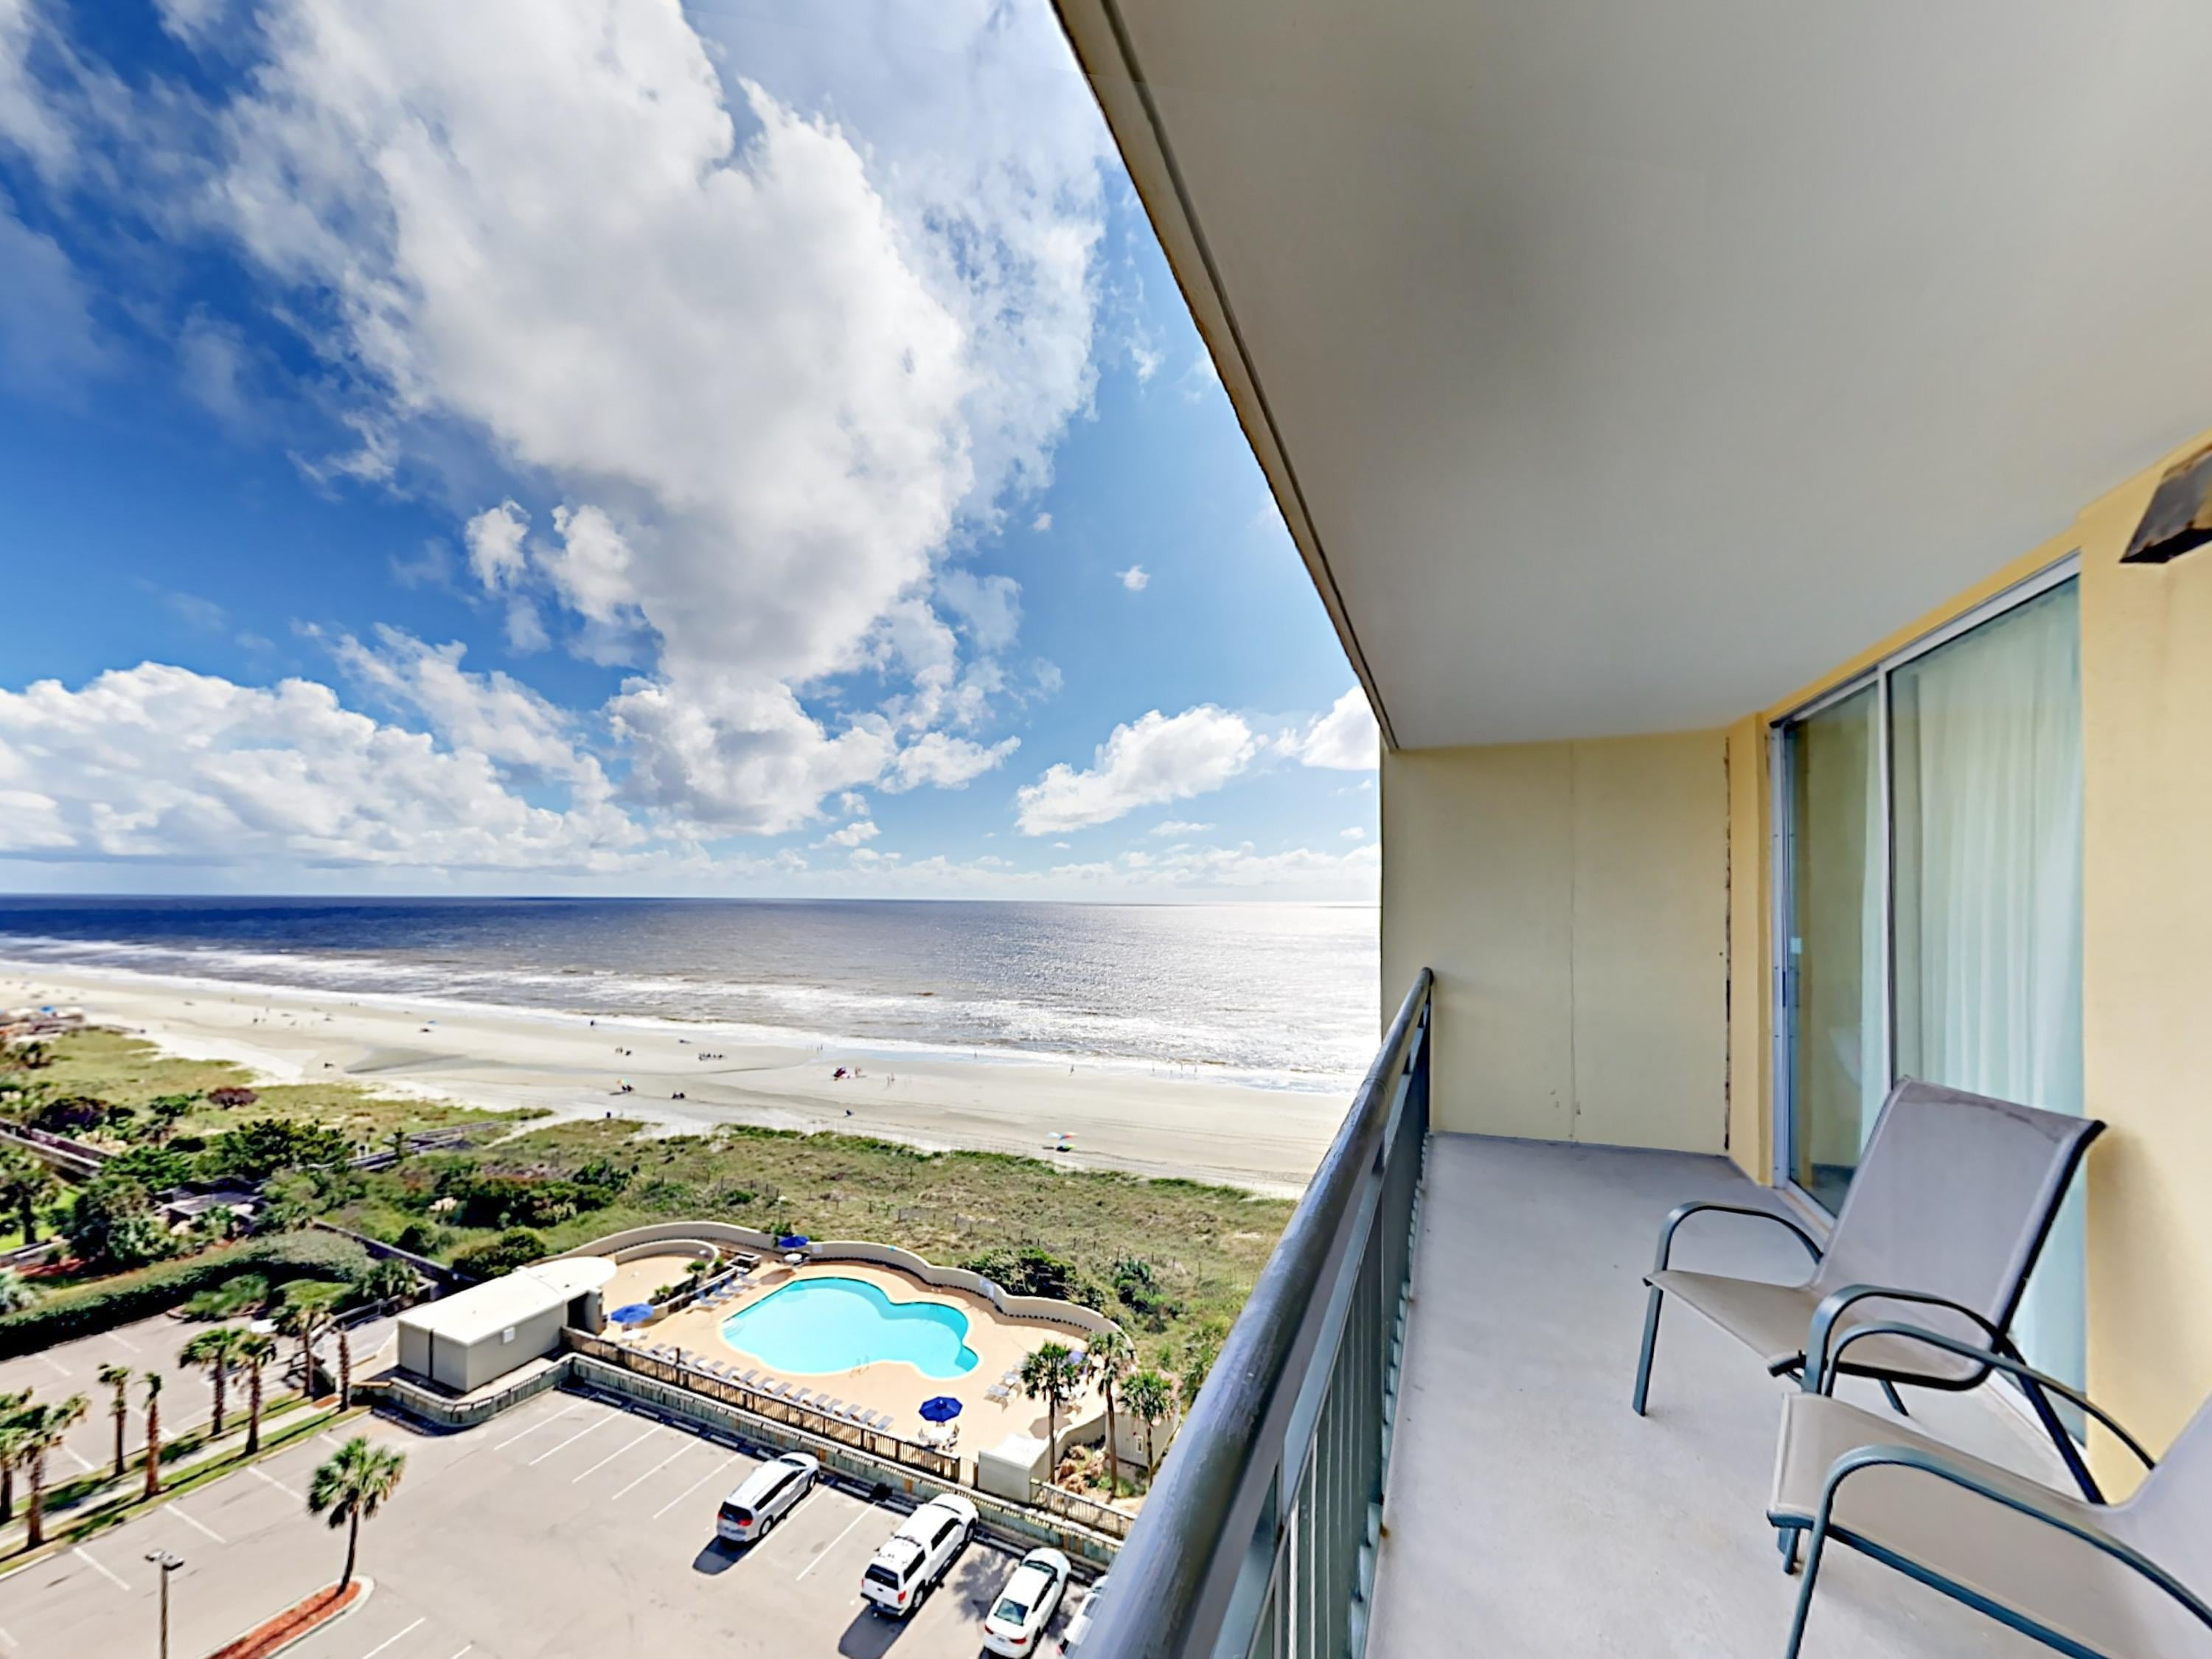 Welcome to Myrtle Beach! This 10th-floor condo is professionally managed by TurnKey Vacation Rentals.